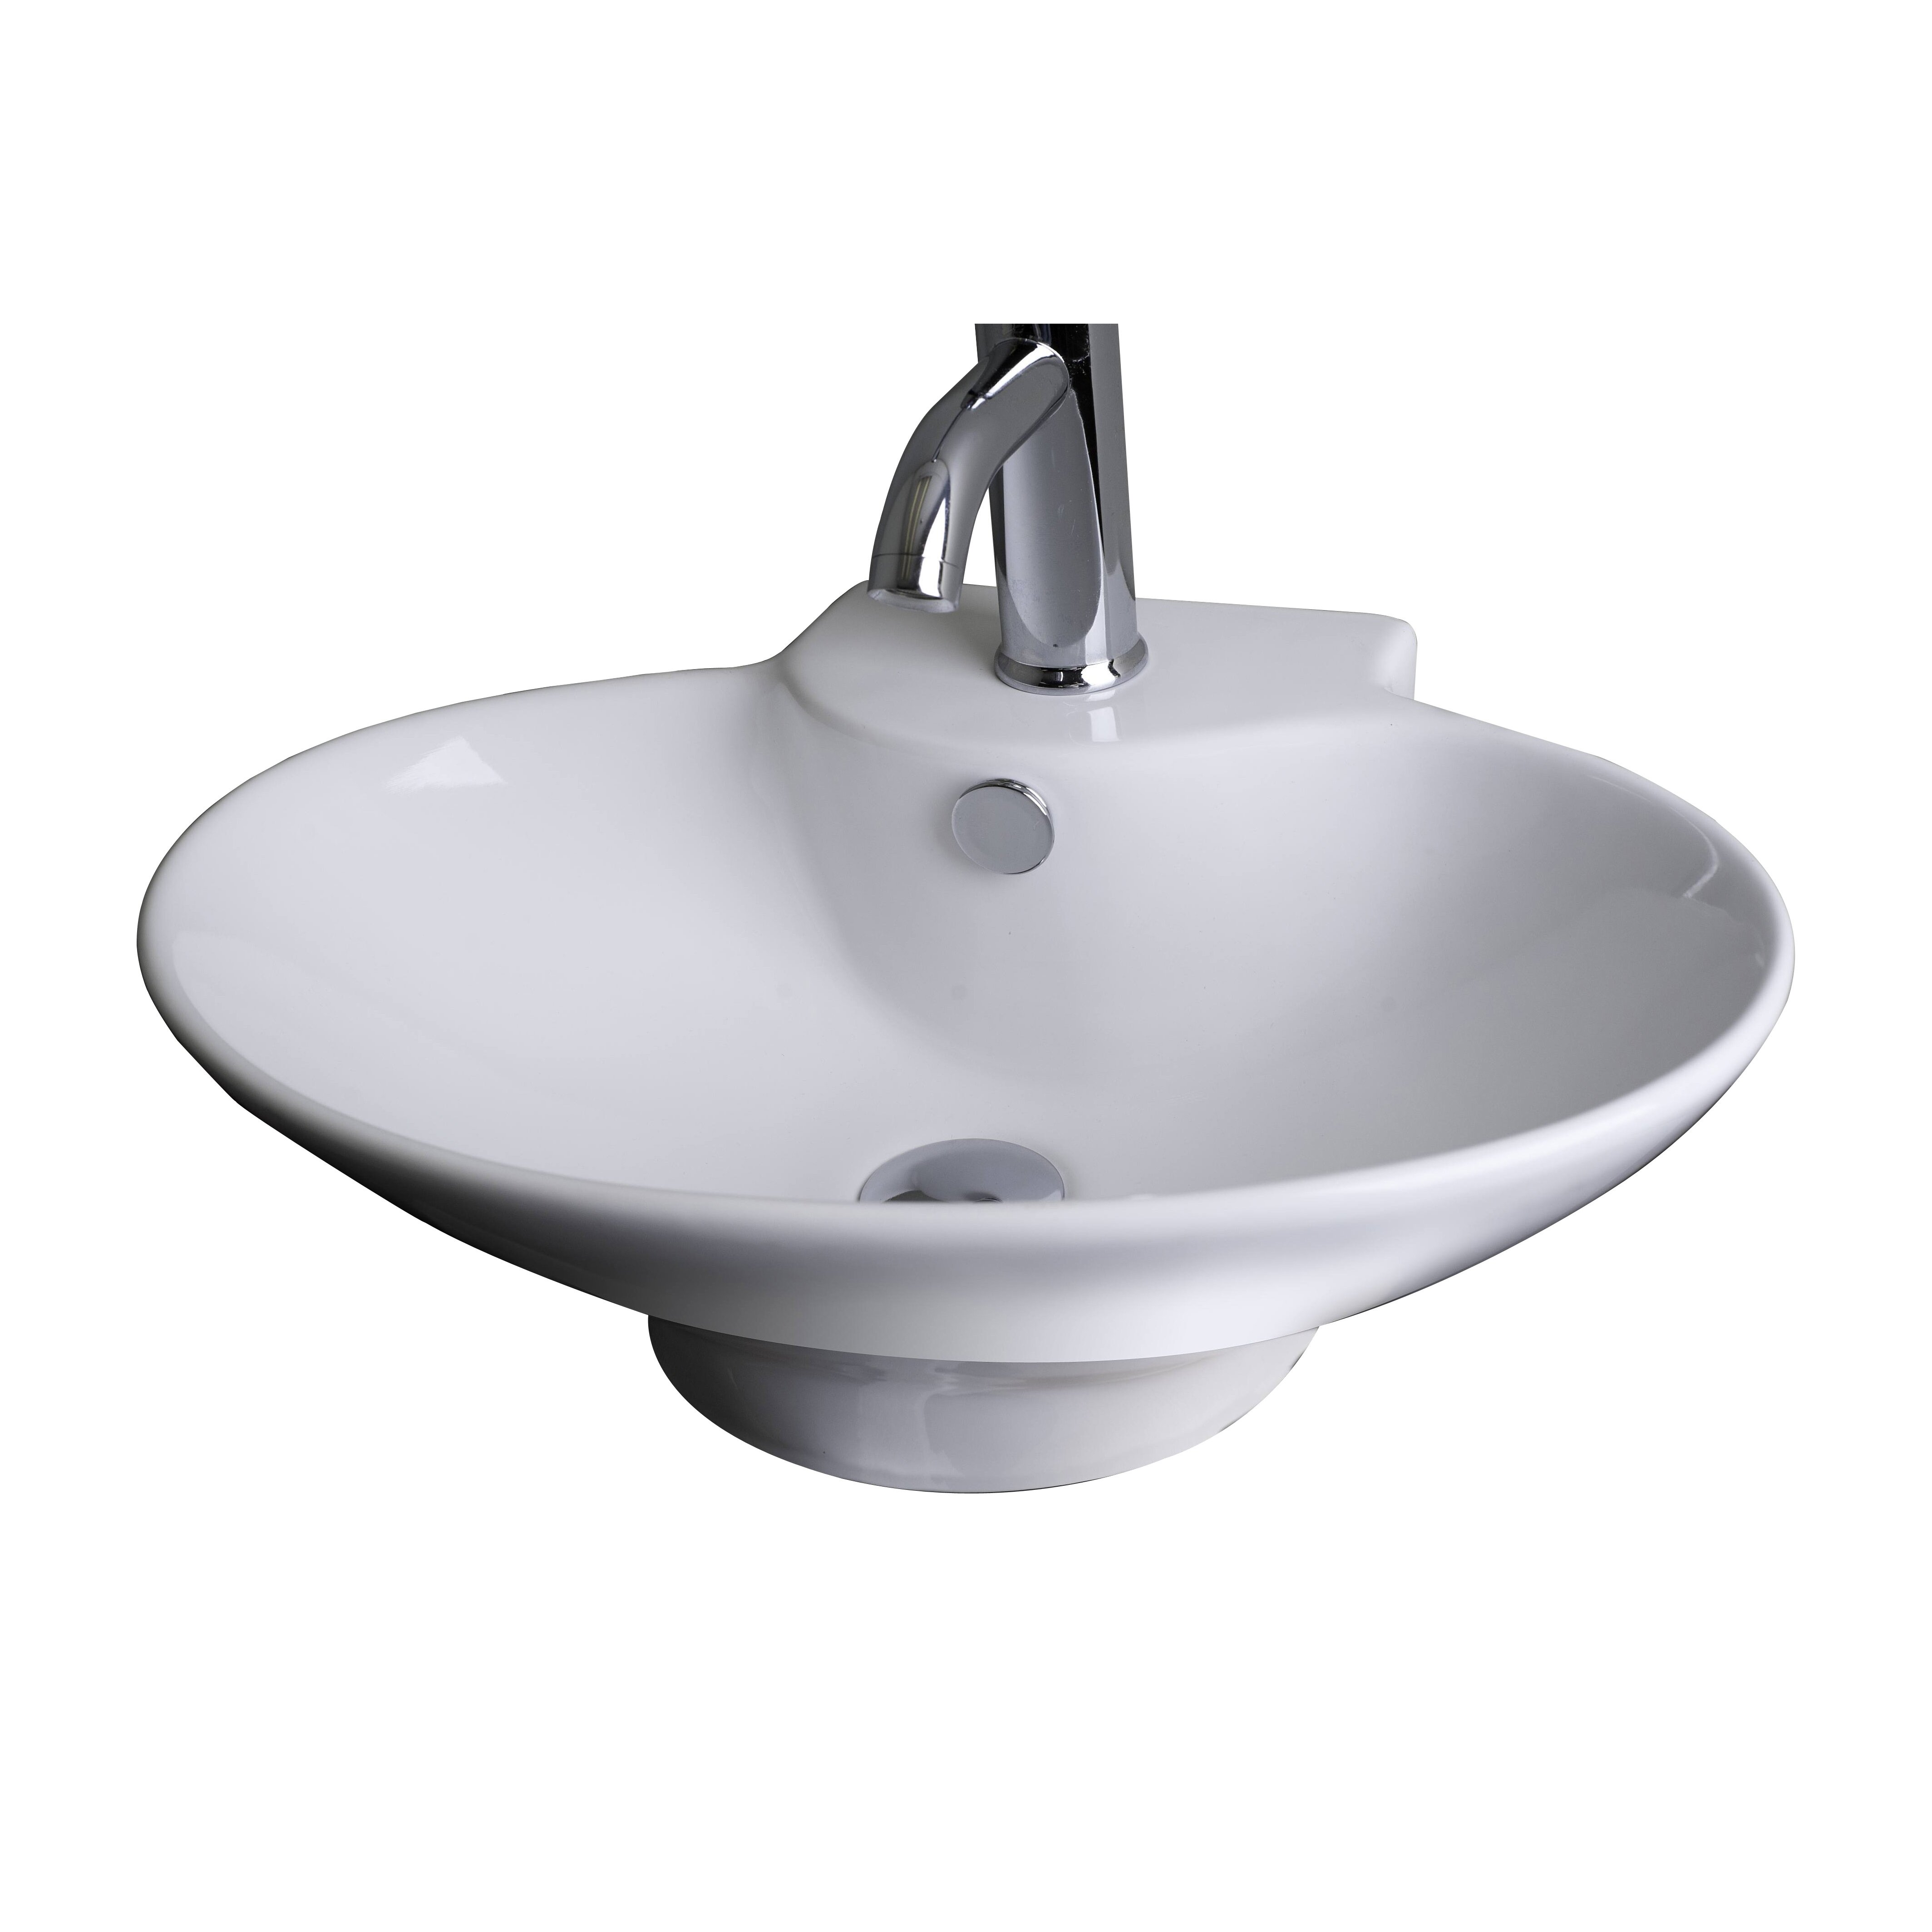 American imaginations above counter oval vessel bathroom sink wayfair for Above counter bathroom sinks glass